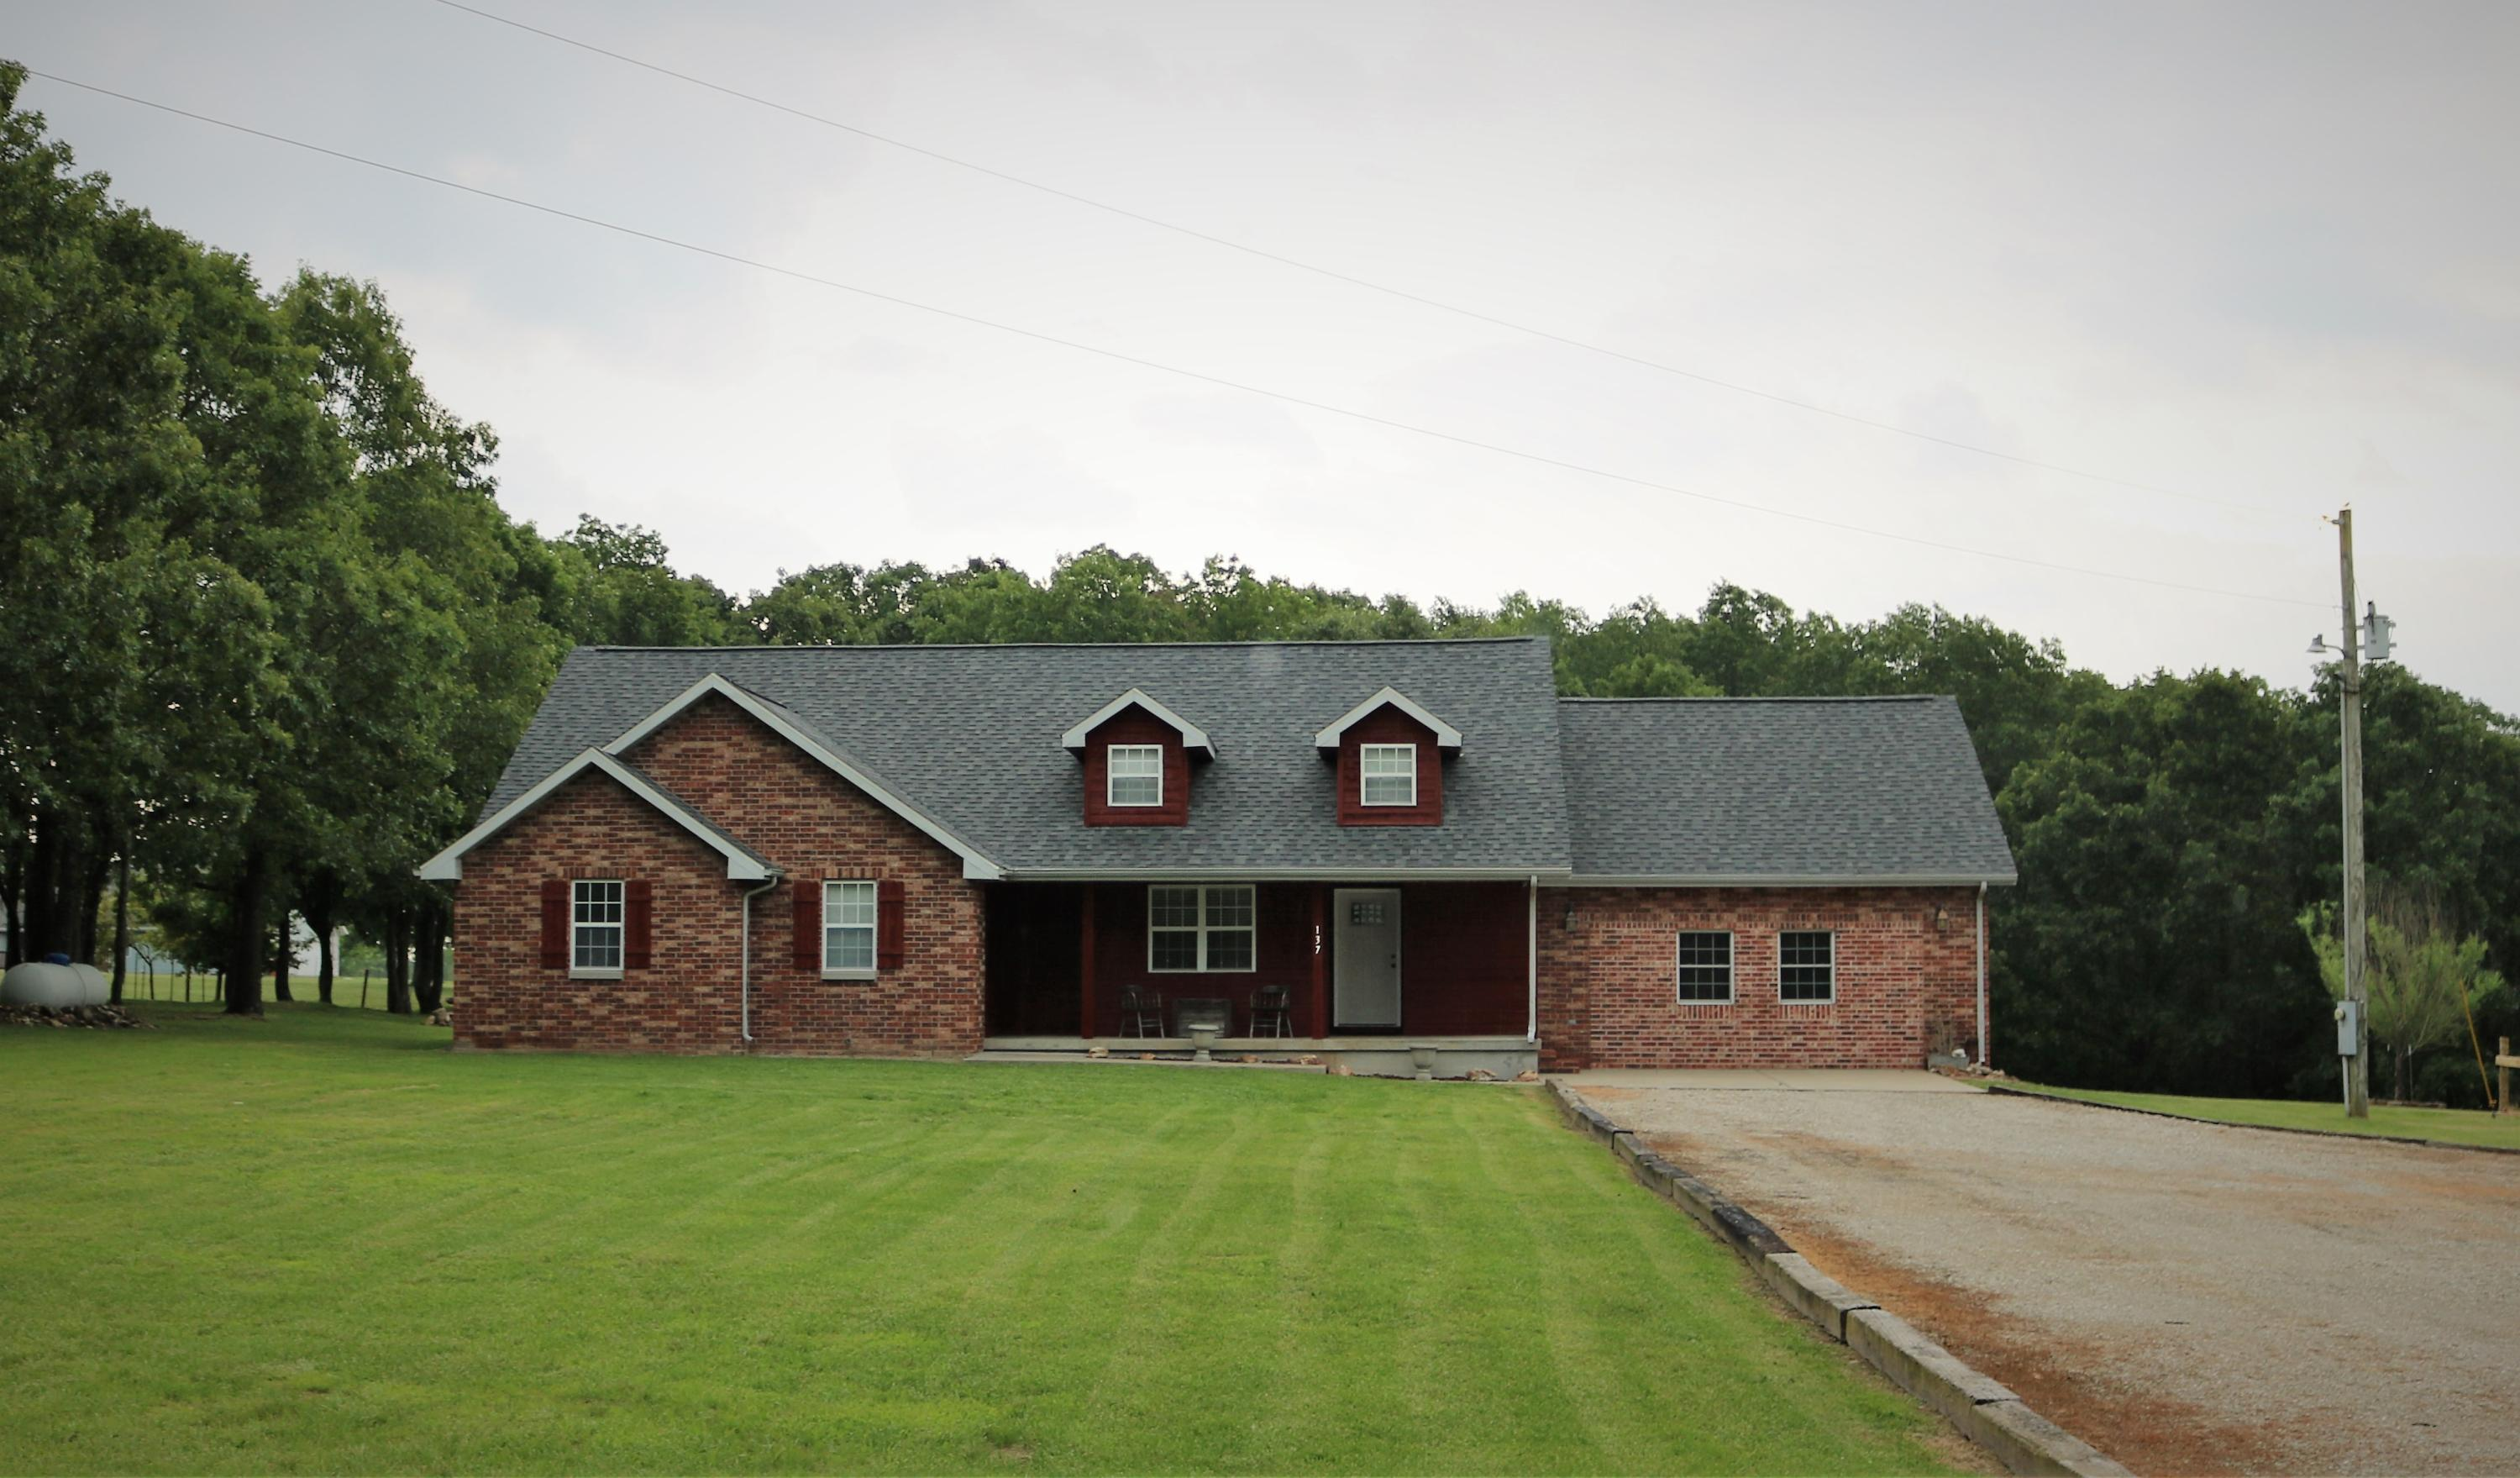 137 Klemme Drive Strafford, MO 65757